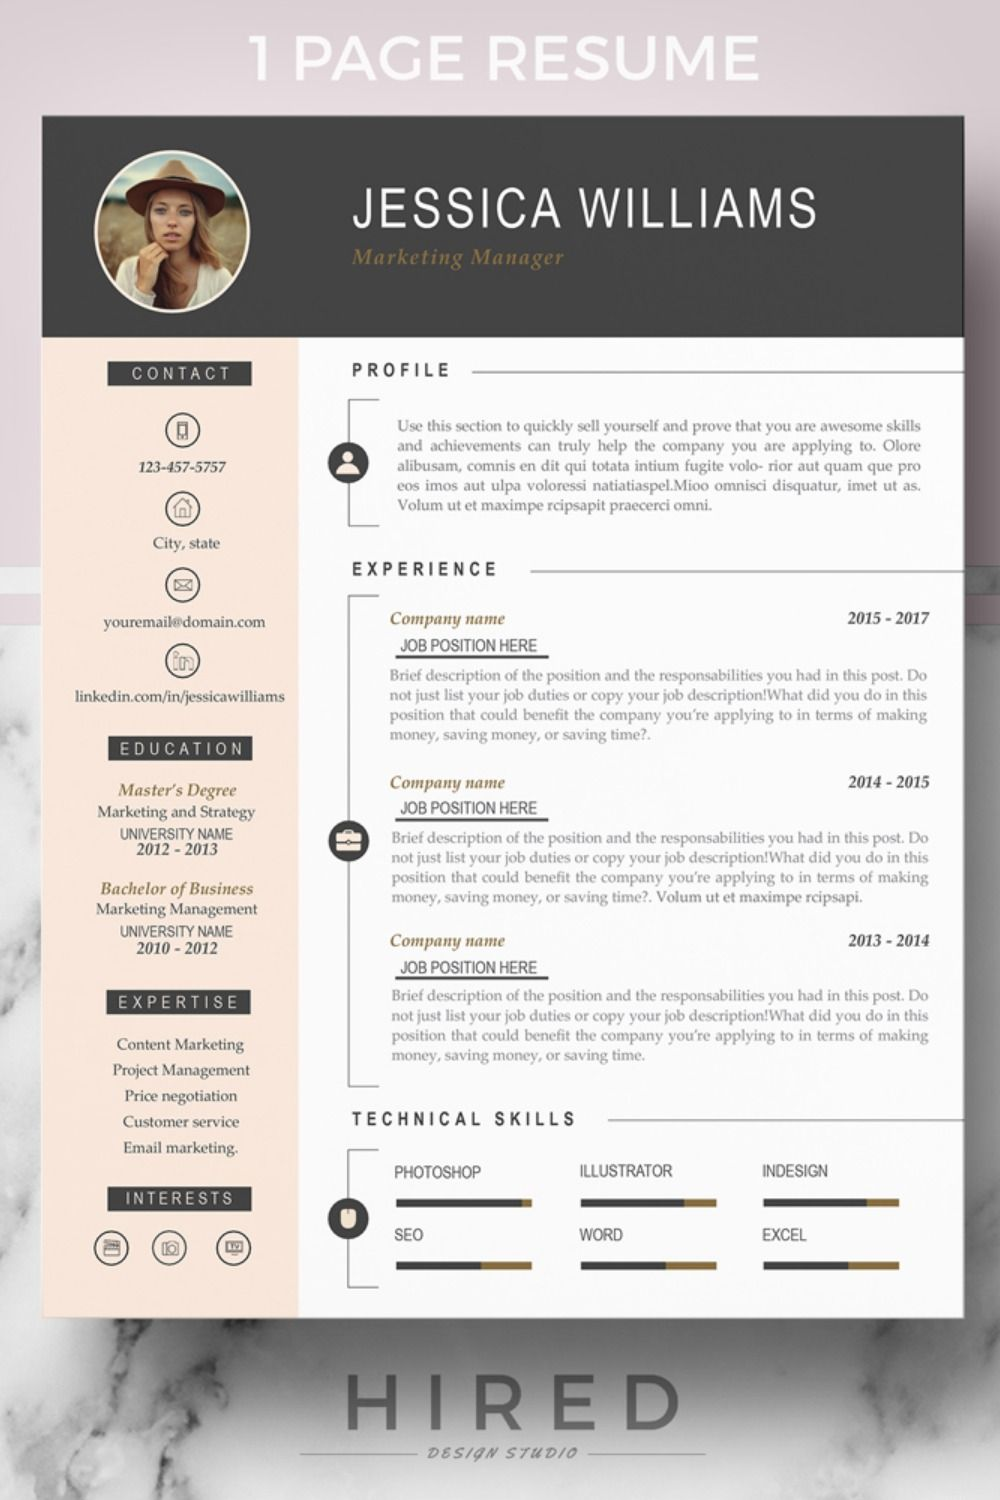 Professional Resume Cv For Ms Word Pages Curriculum Vitae Cv For Word Pages Cover Letter Cv Words Resume Template Professional Cv Template Free